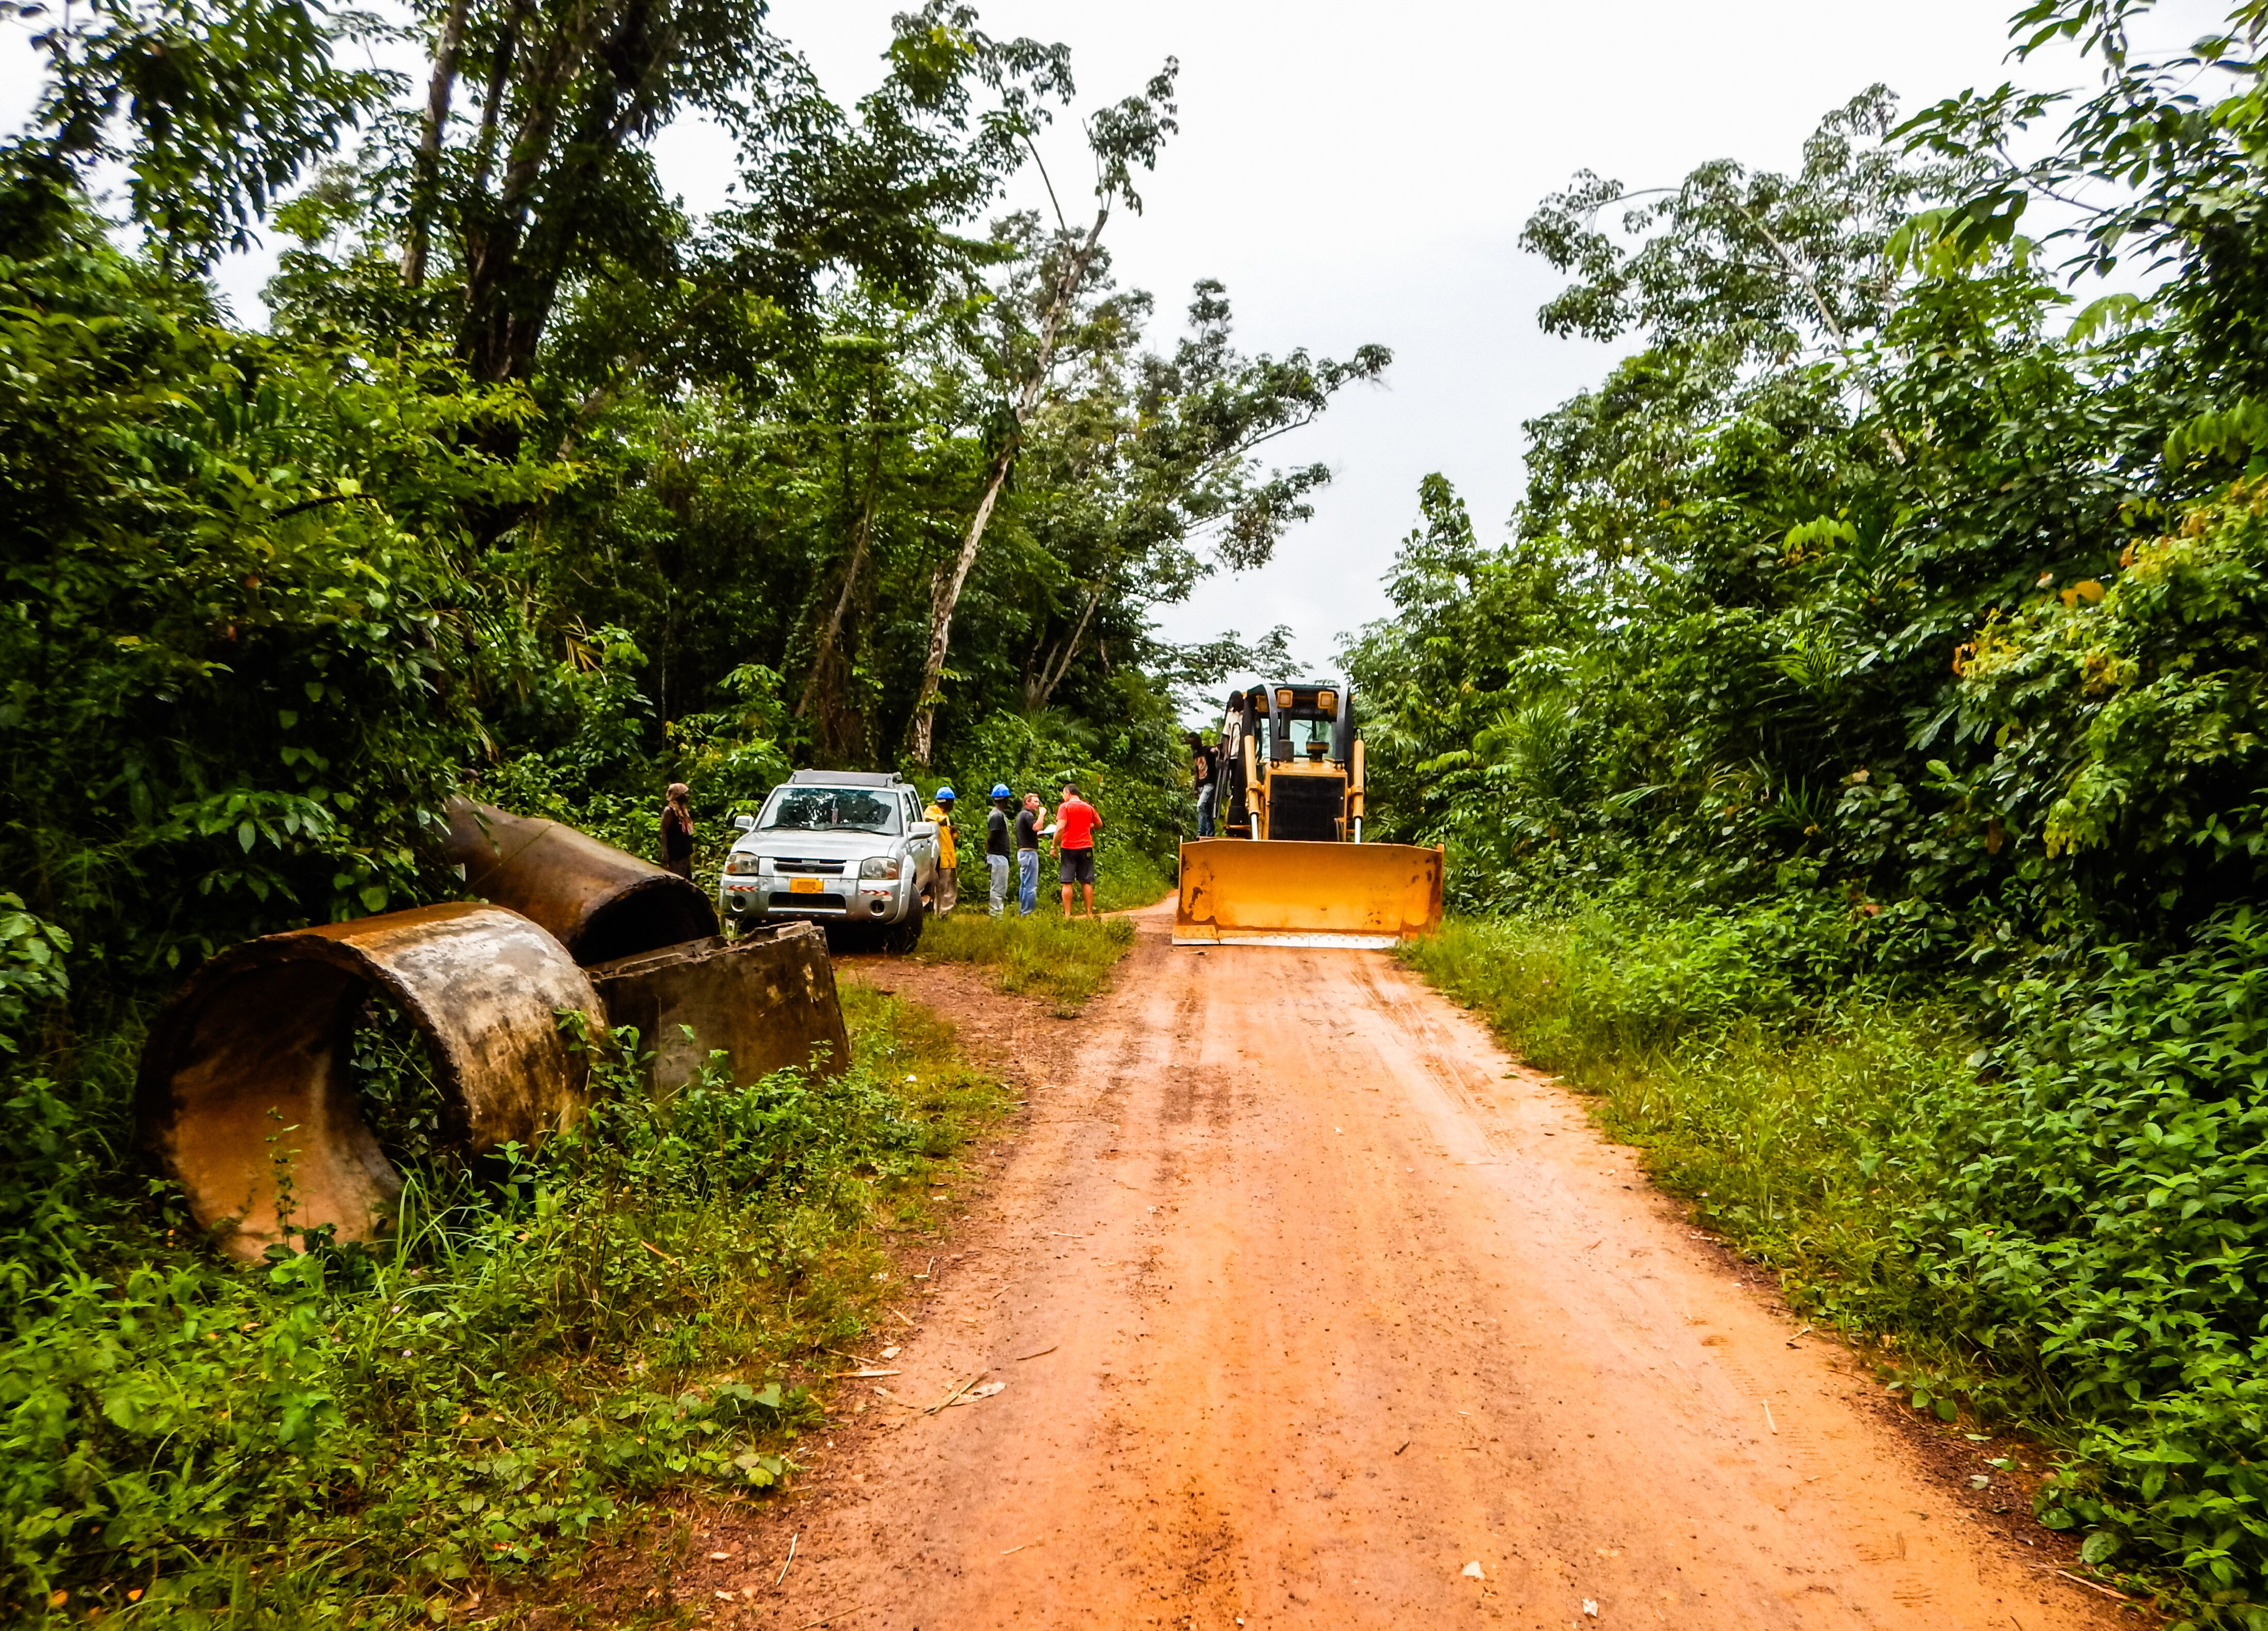 Workers and a bulldozer on a dirt road running through the rainforest